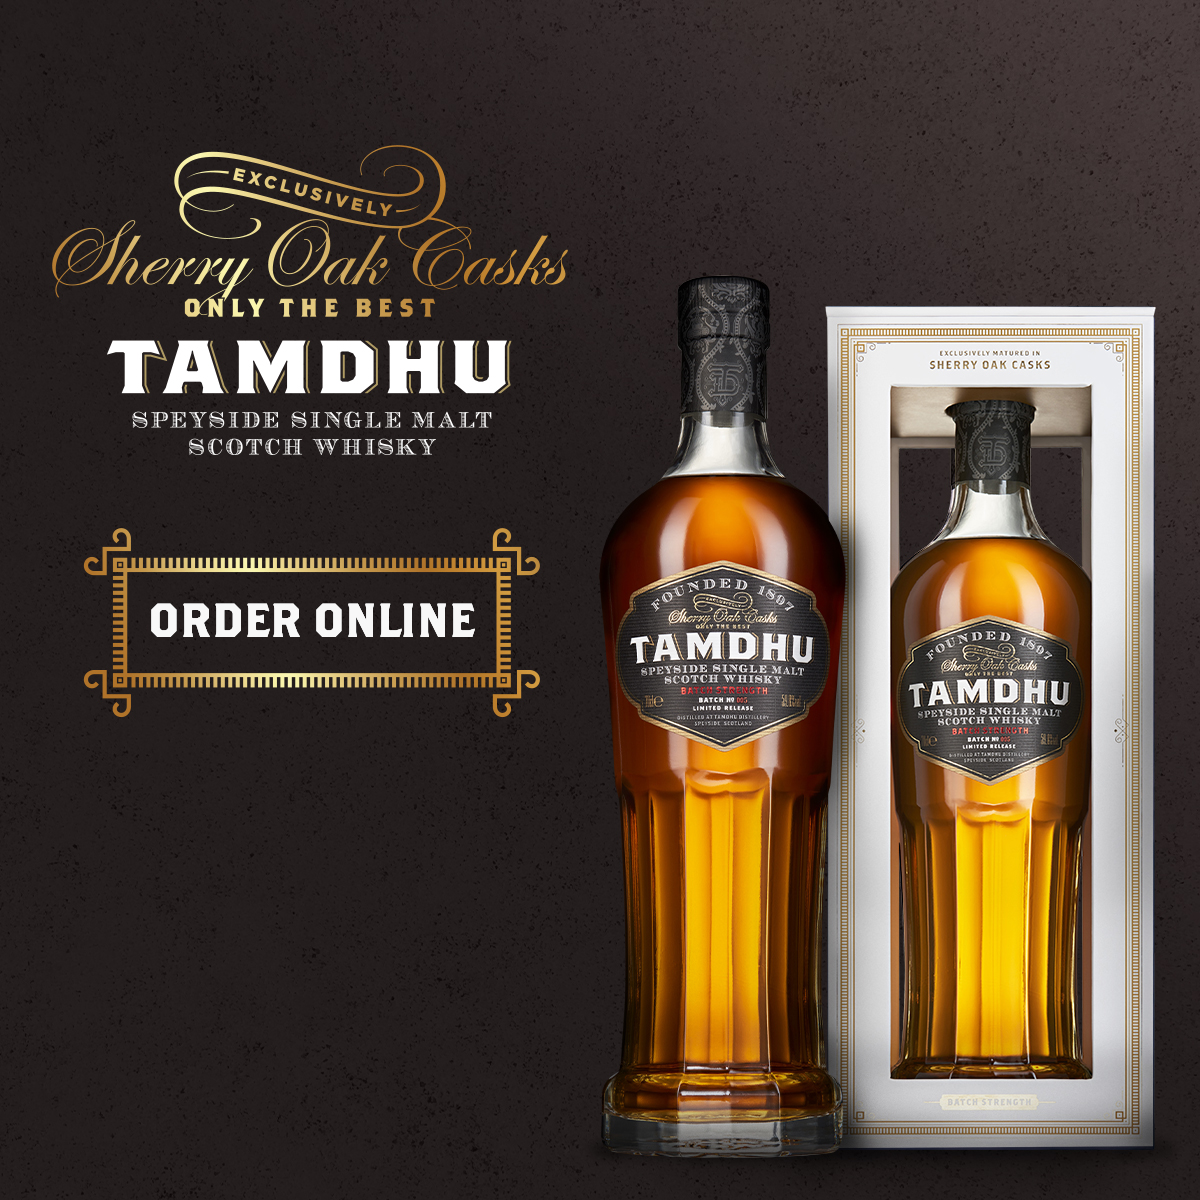 Introducing Tamdhu Batch Strength No. 005, the latest addition to our multi-award winning 'Batch Strength' collection of exquisite single malts.   https://t.co/yDkHwZv5eI https://t.co/P2iCxNjDlB